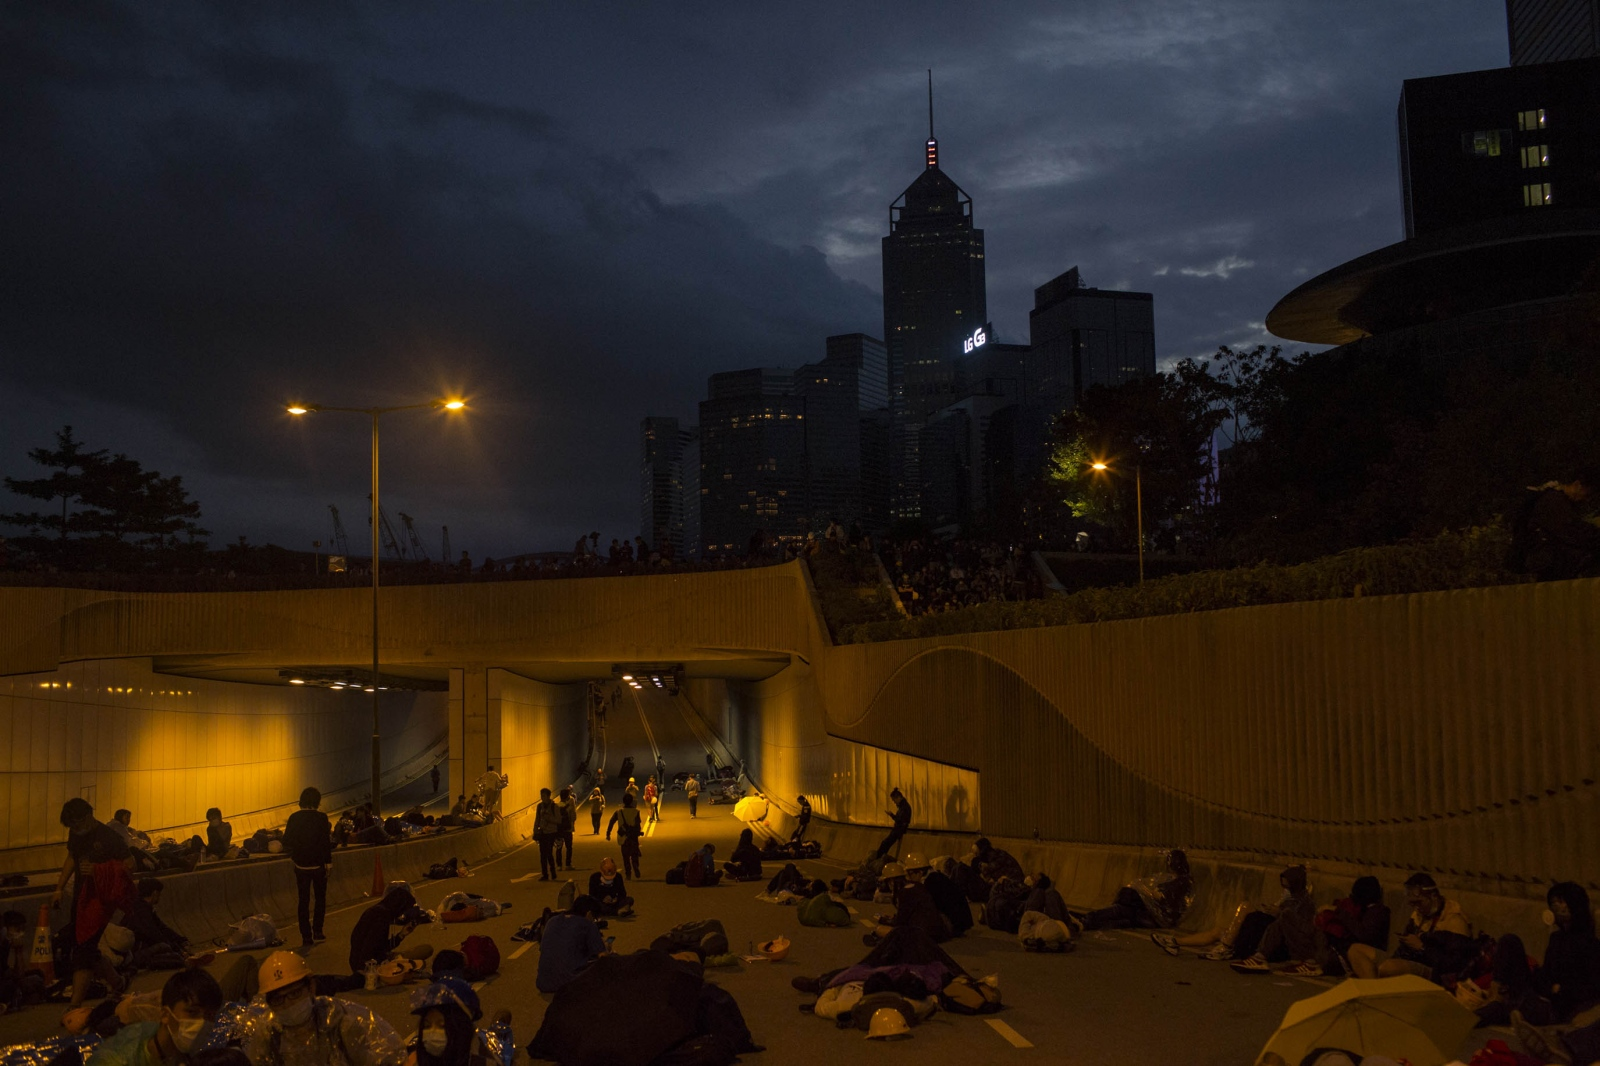 Protestors catch whatever sleep they can get during a violent night of scuffles with the police in the Admiralty district of Hong Kong, in the early hours of December 1, 2014. Protestors attempted to retake and occupy a major road that had earlier been cleared by the police weeks earlier.